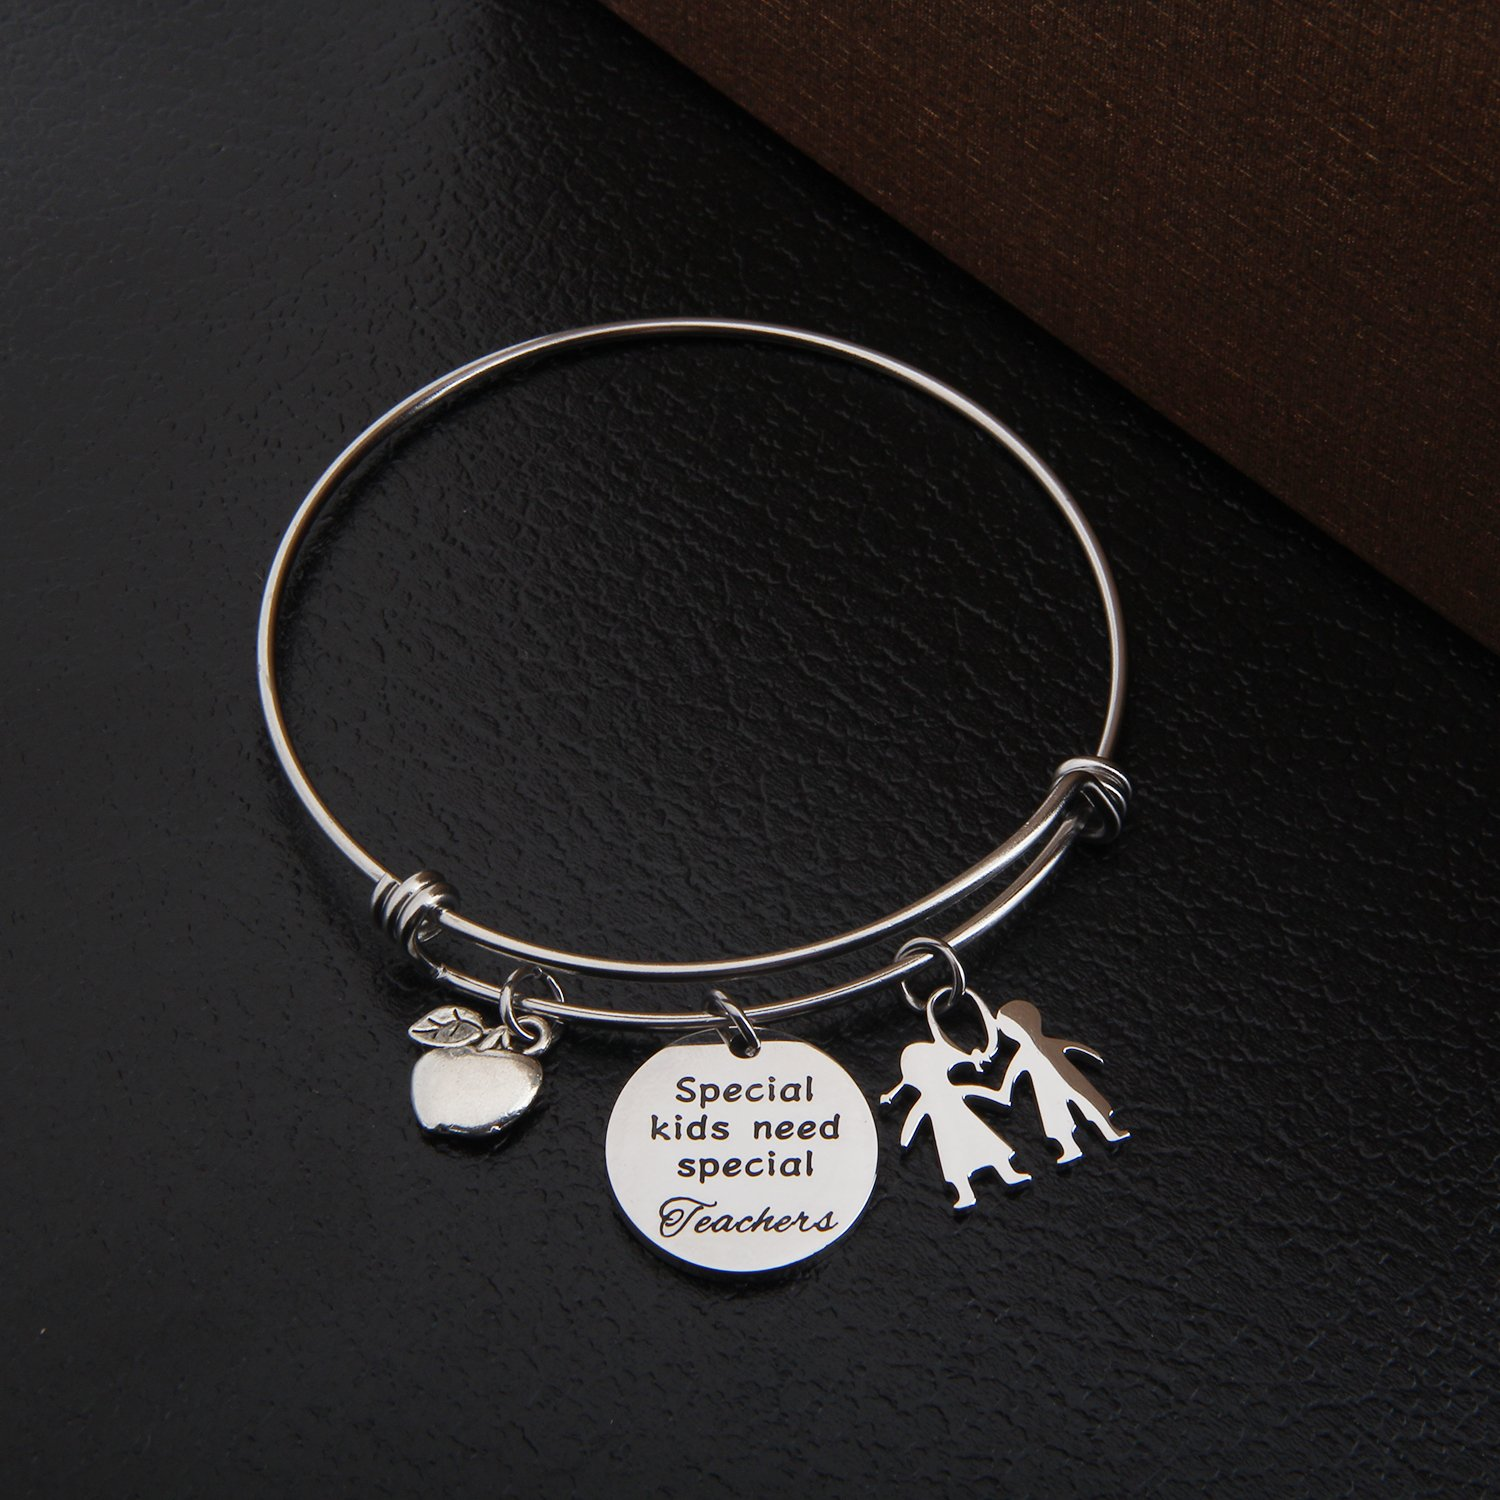 TGBJE Teacher Gifts Special Kids Need Special Teachers Bracelet Wire Bangle Teacher Appreciation Gift With Apple Charm